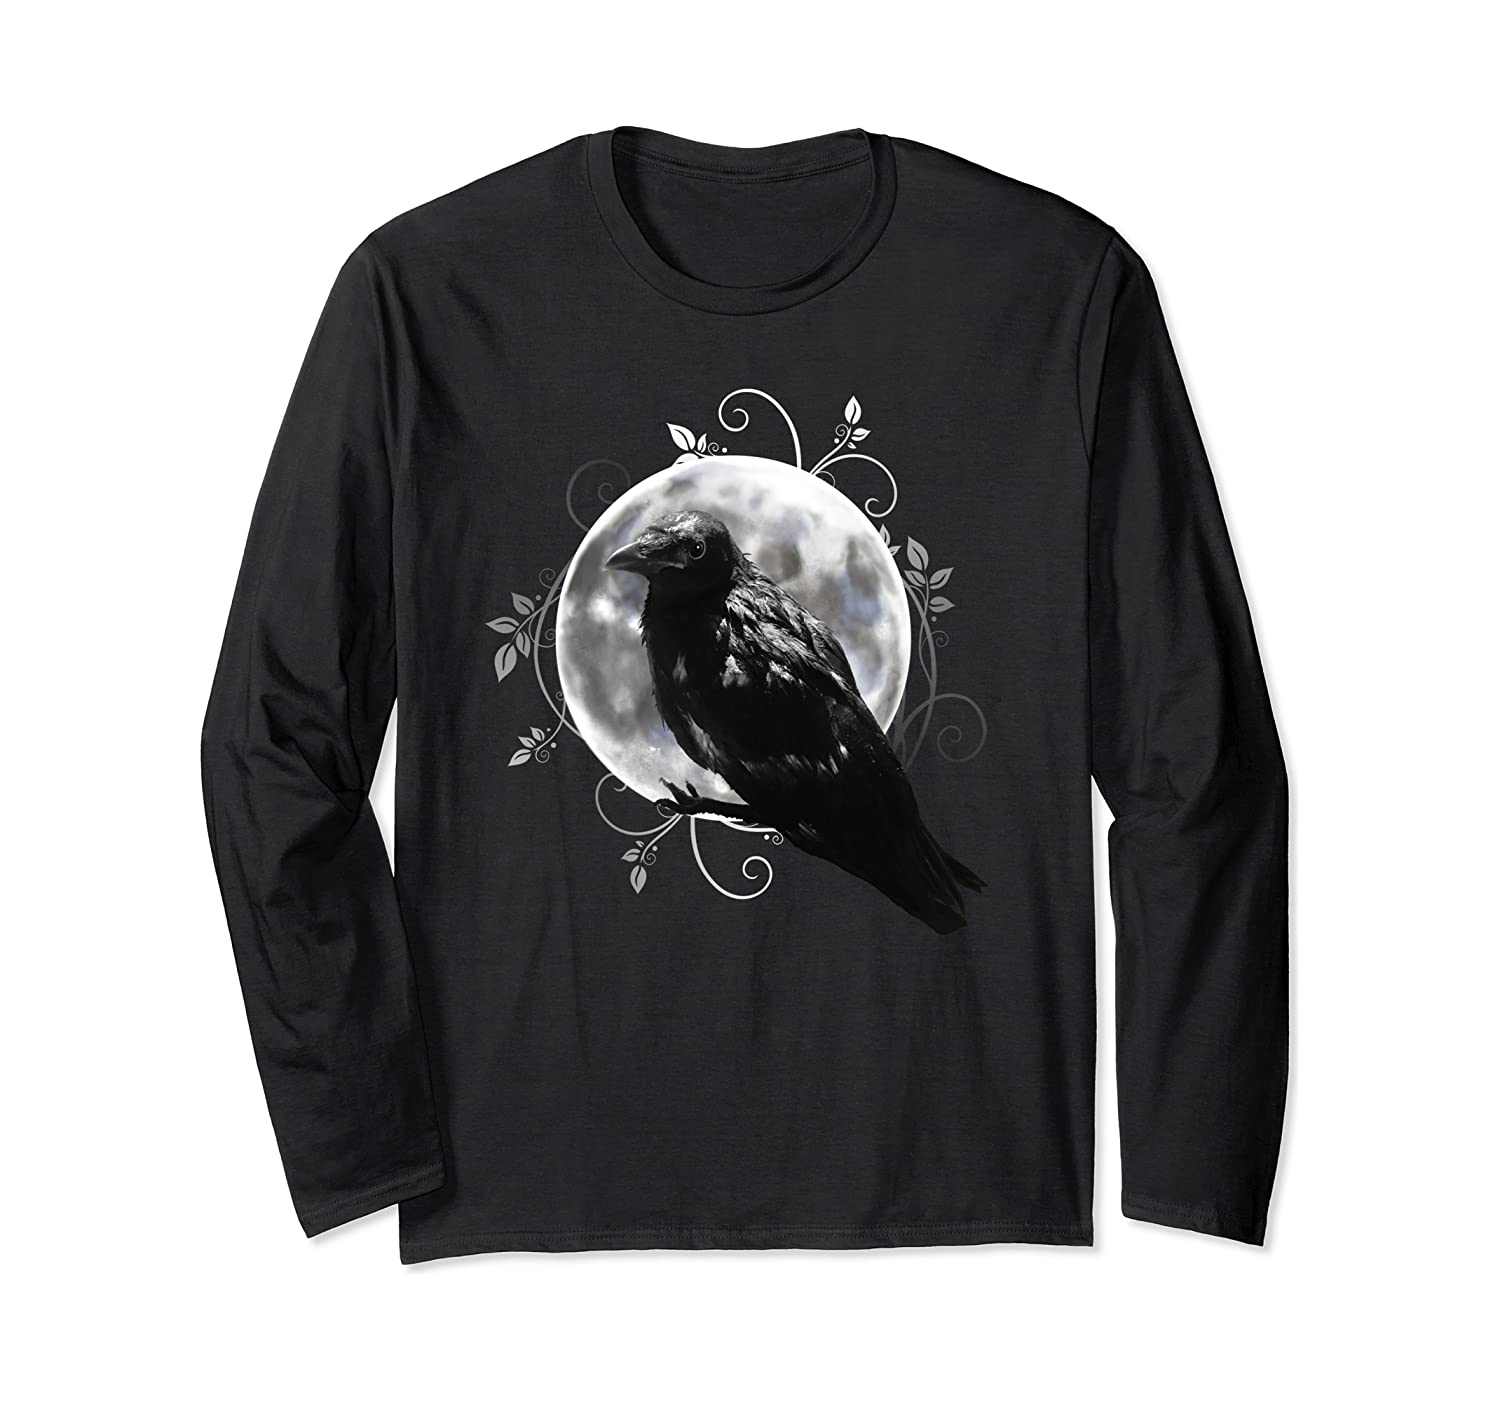 Black Raven with Moon. Occult Halloween Design. Gift Idea. Long Sleeve T-Shirt